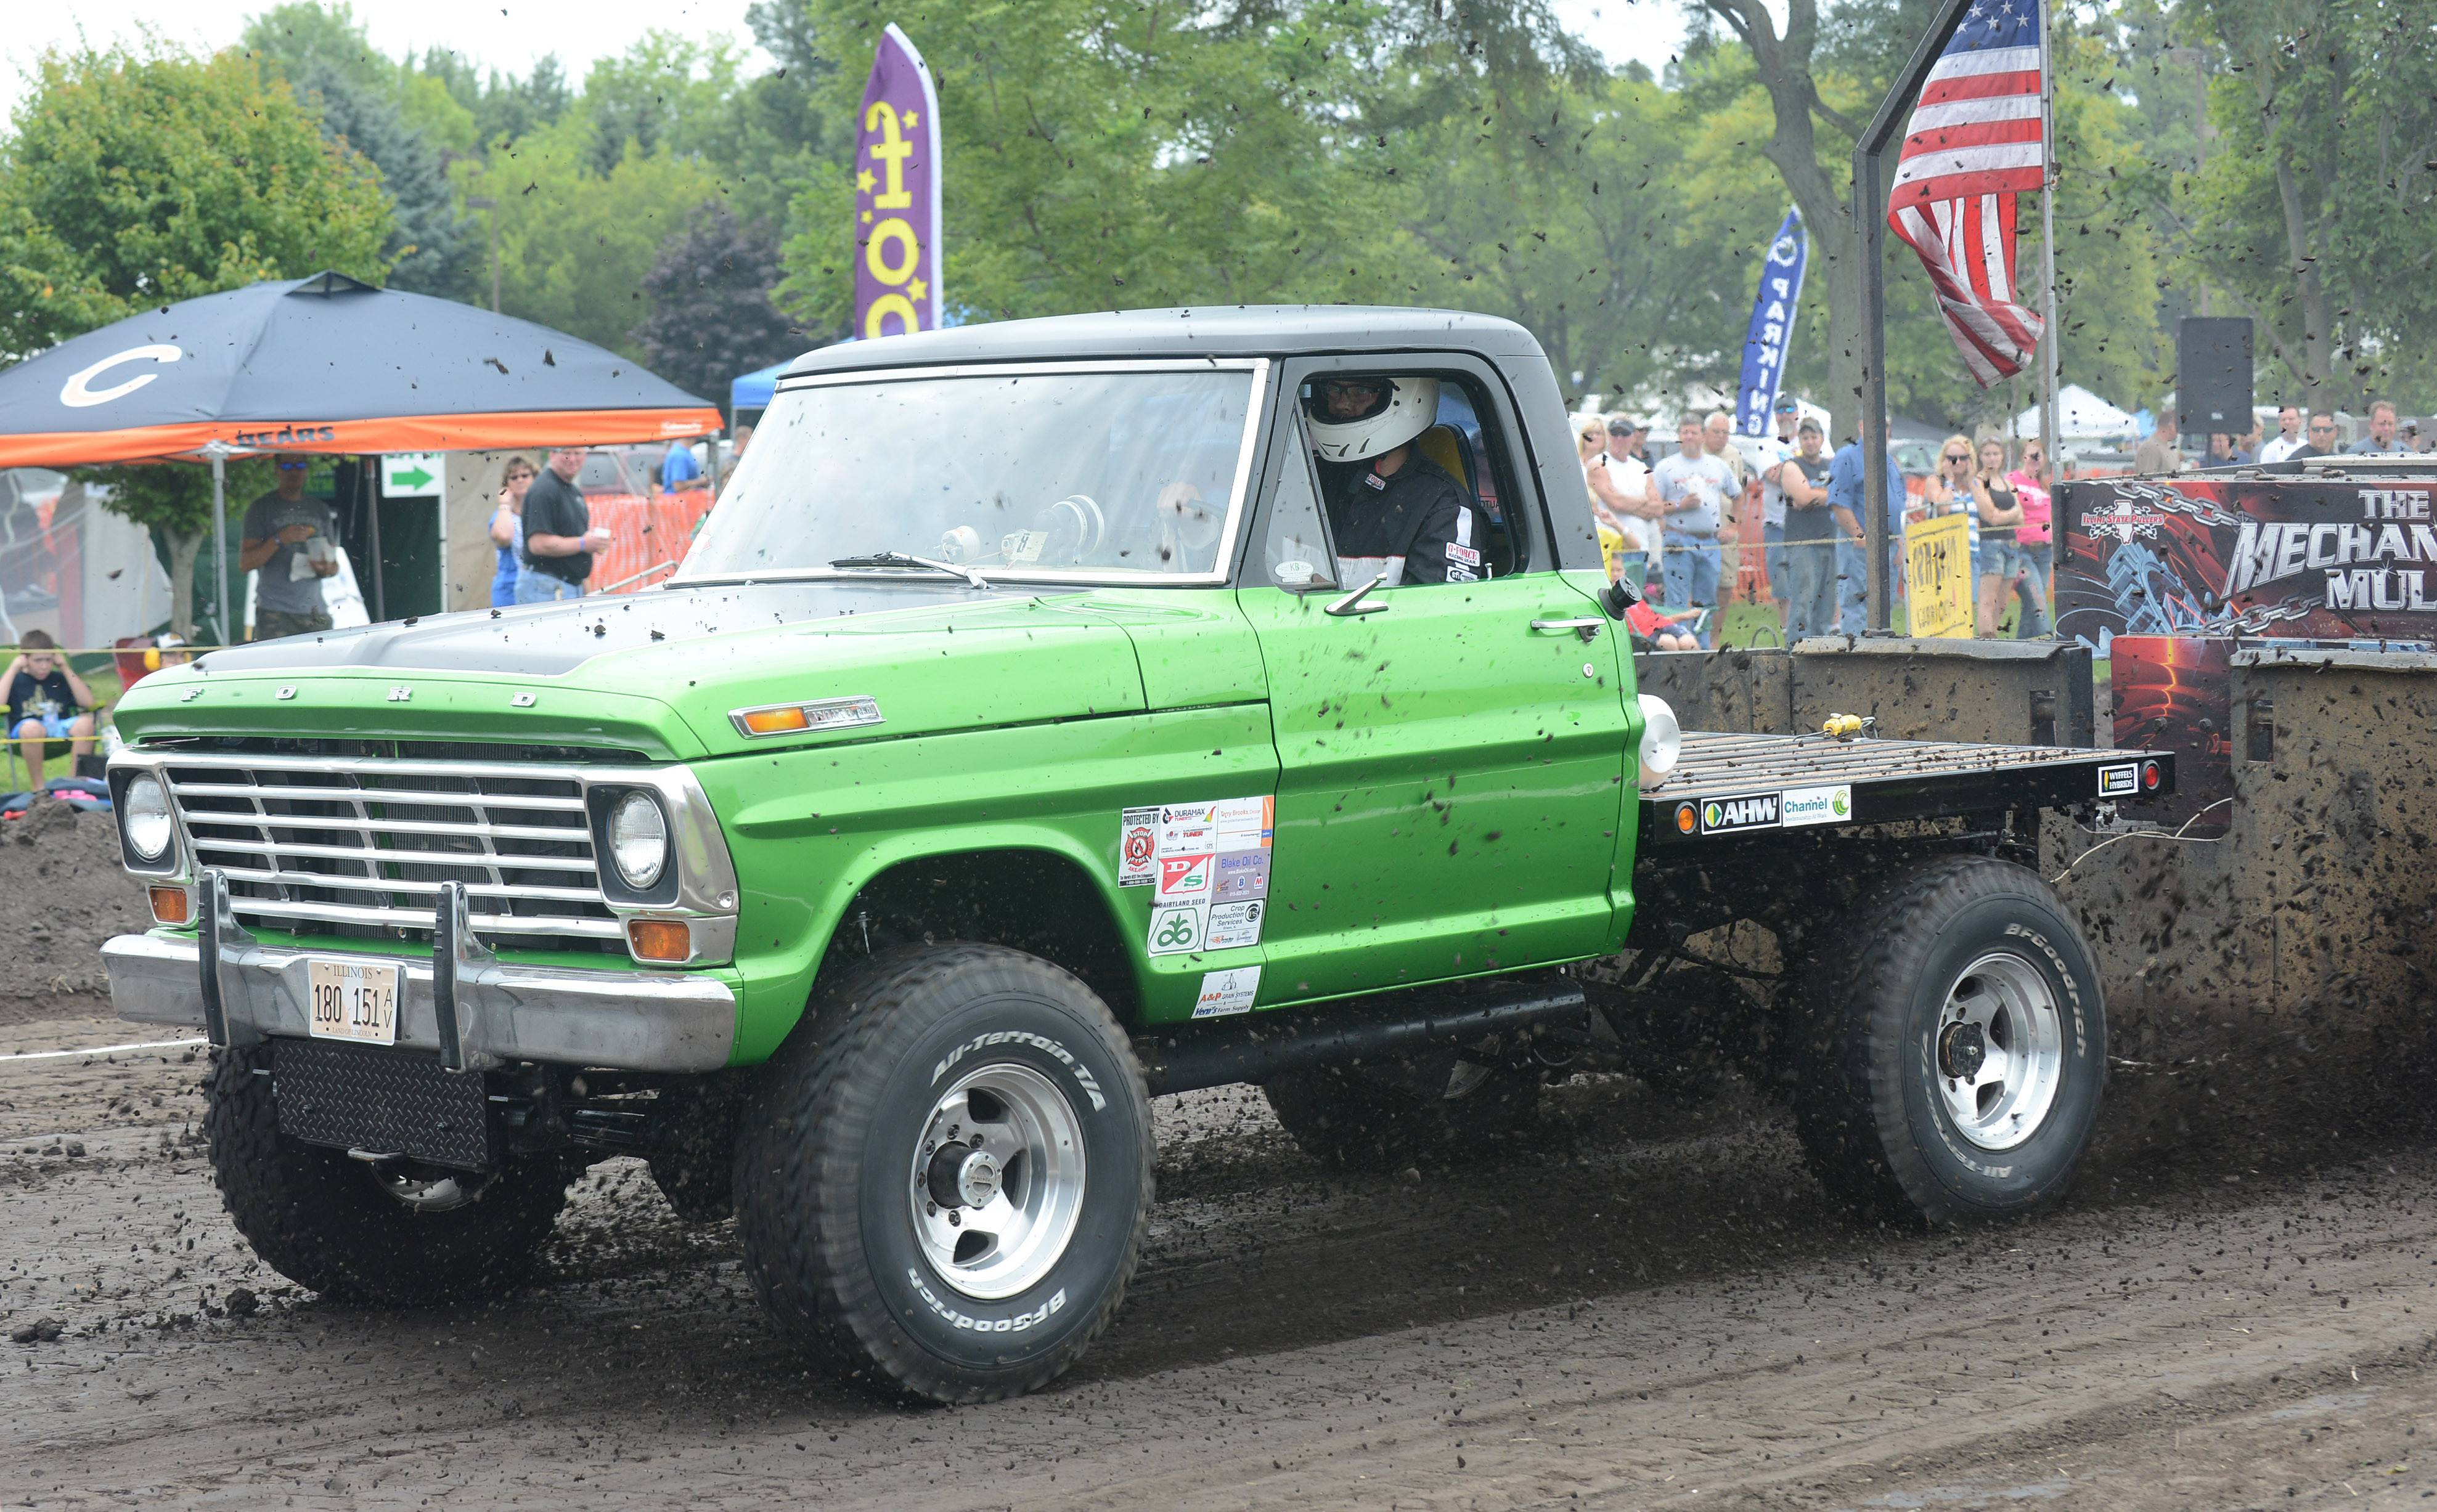 Evan Olson of Maple Park competes in the 6,500 AS 4 x 4 truck class with his '68 Ford F250 at Elburn Days Saturday.